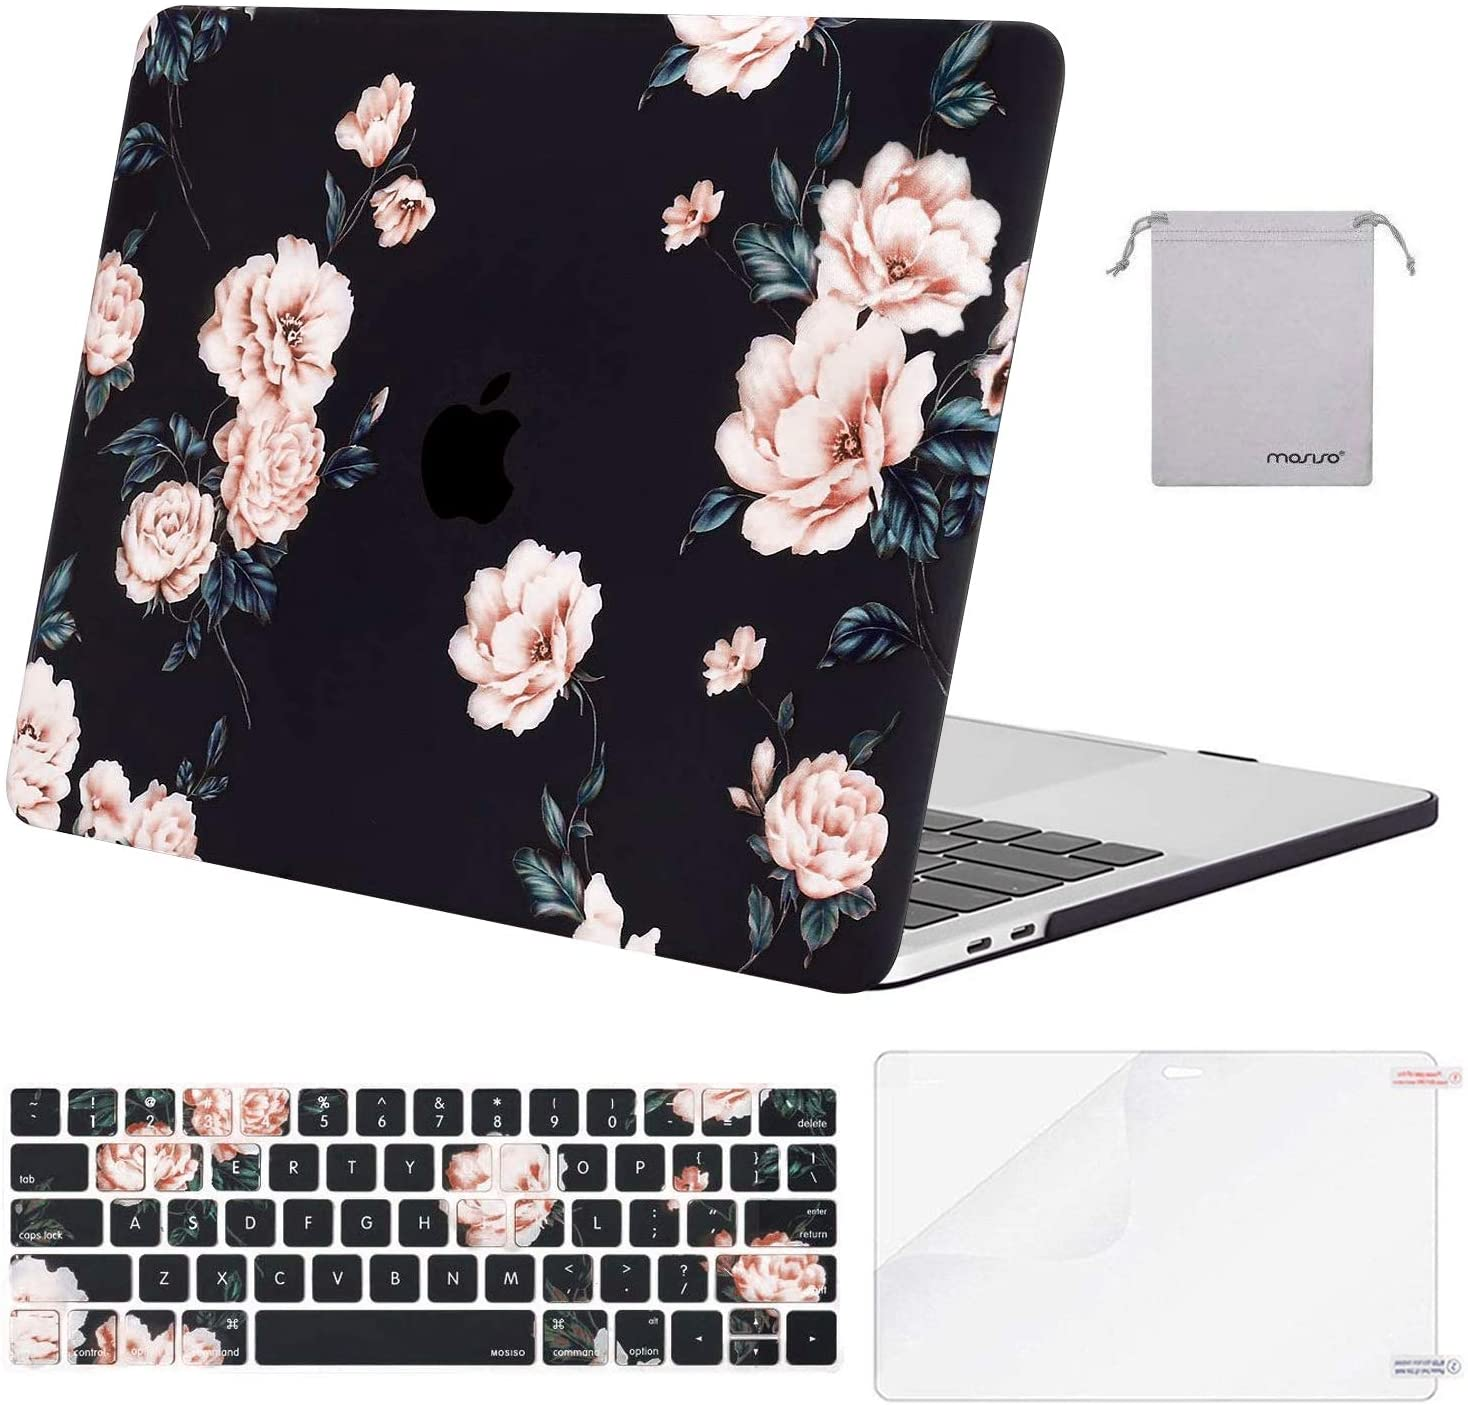 MOSISO Compatible with MacBook Pro 13 inch Case 2019 2018 2017 2016 Release A2159 A1989 A1706 A1708, Plastic Camellia Hard Shell Case&Keyboard Cover Skin&Screen Protector&Storage Bag, Black